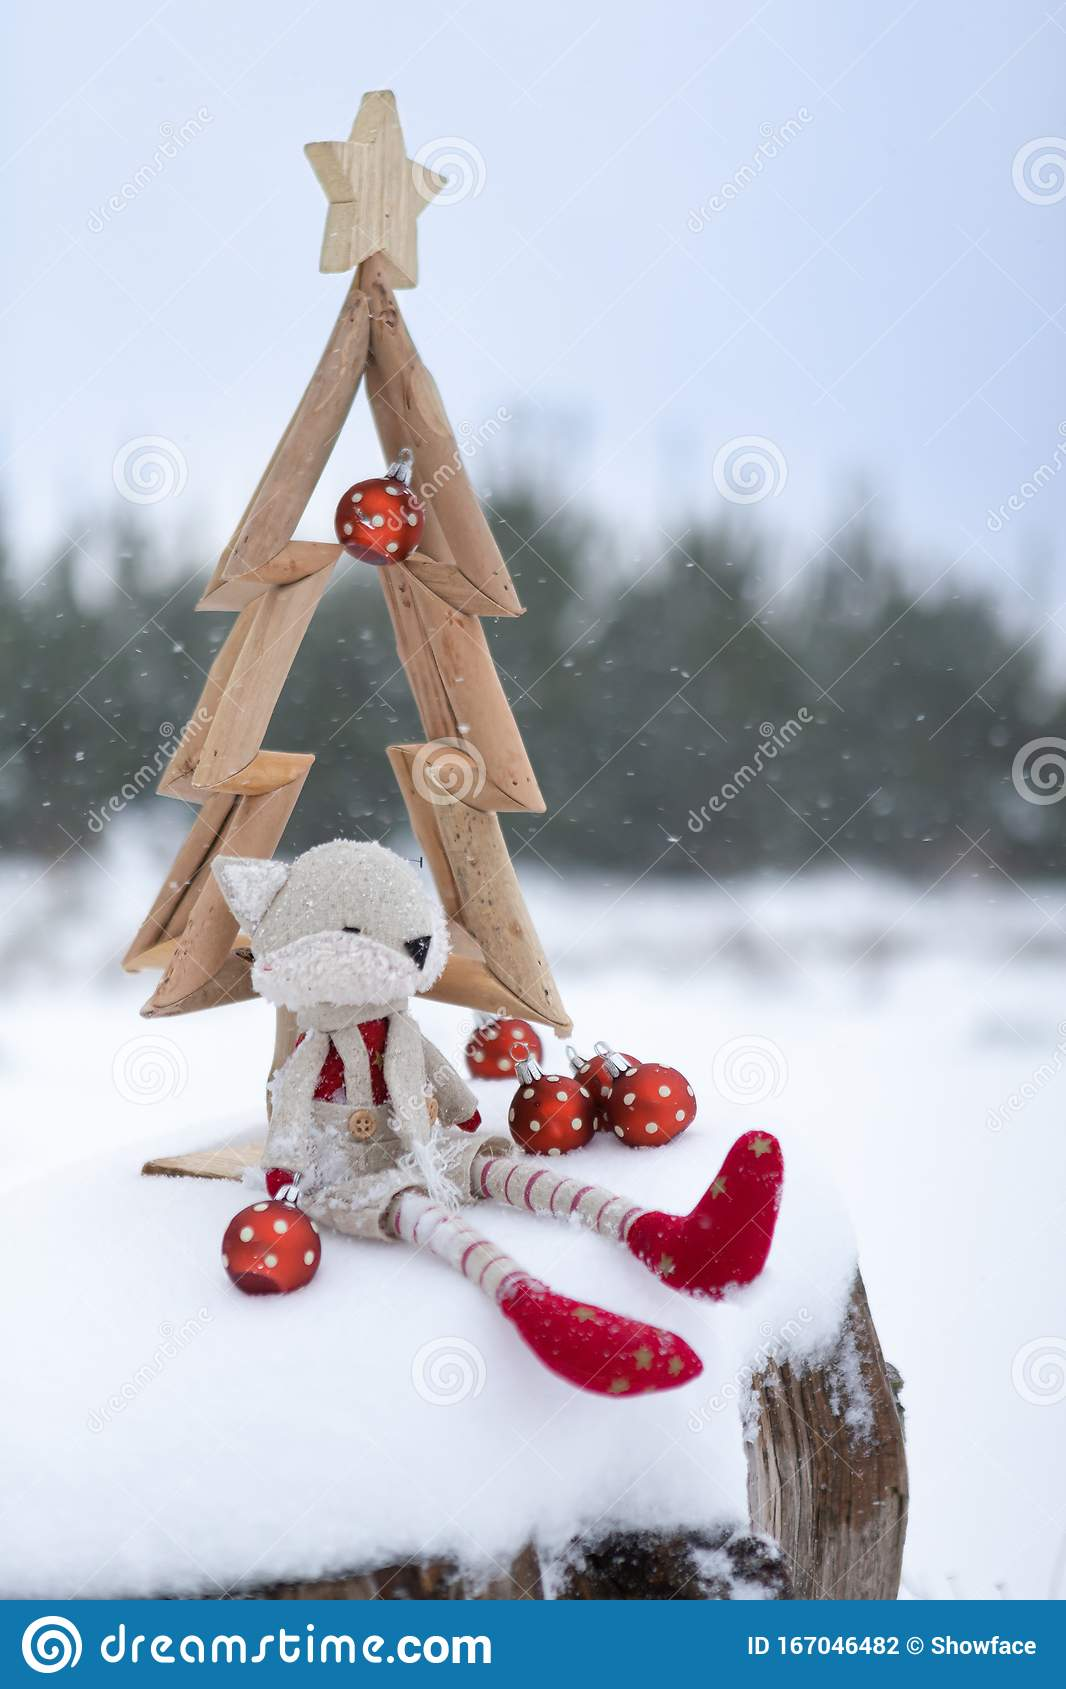 Simple Christmas Tree In Snow With Baubles And Christmas Decorat Stock Photo Image Of Festive Cold 167046482